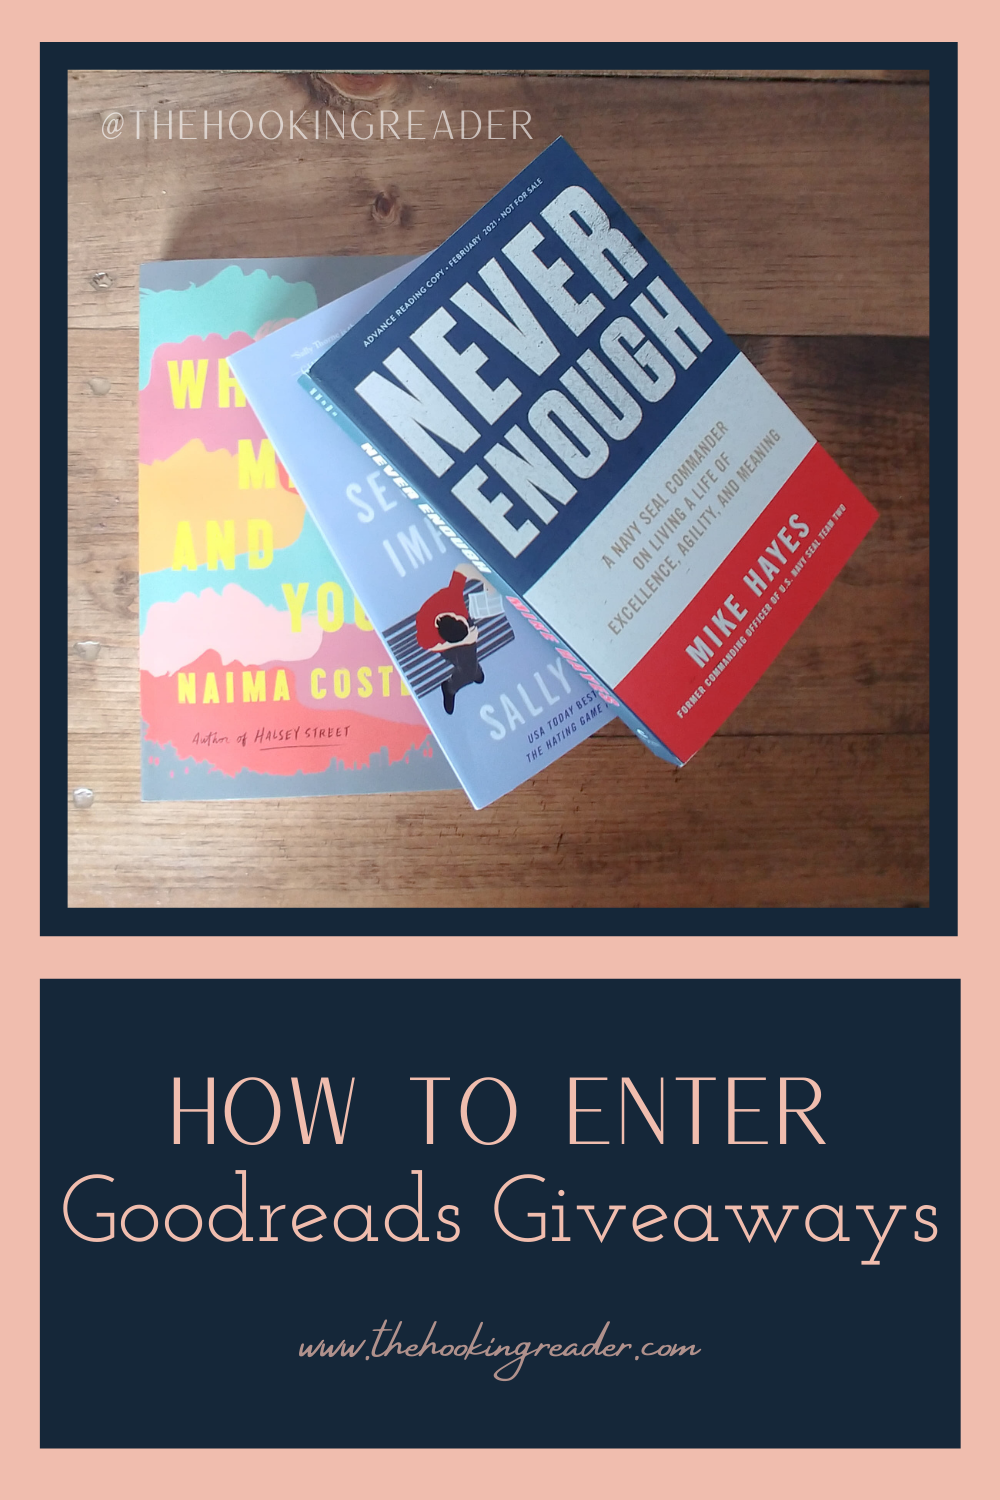 How to Enter Goodreads Giveaways